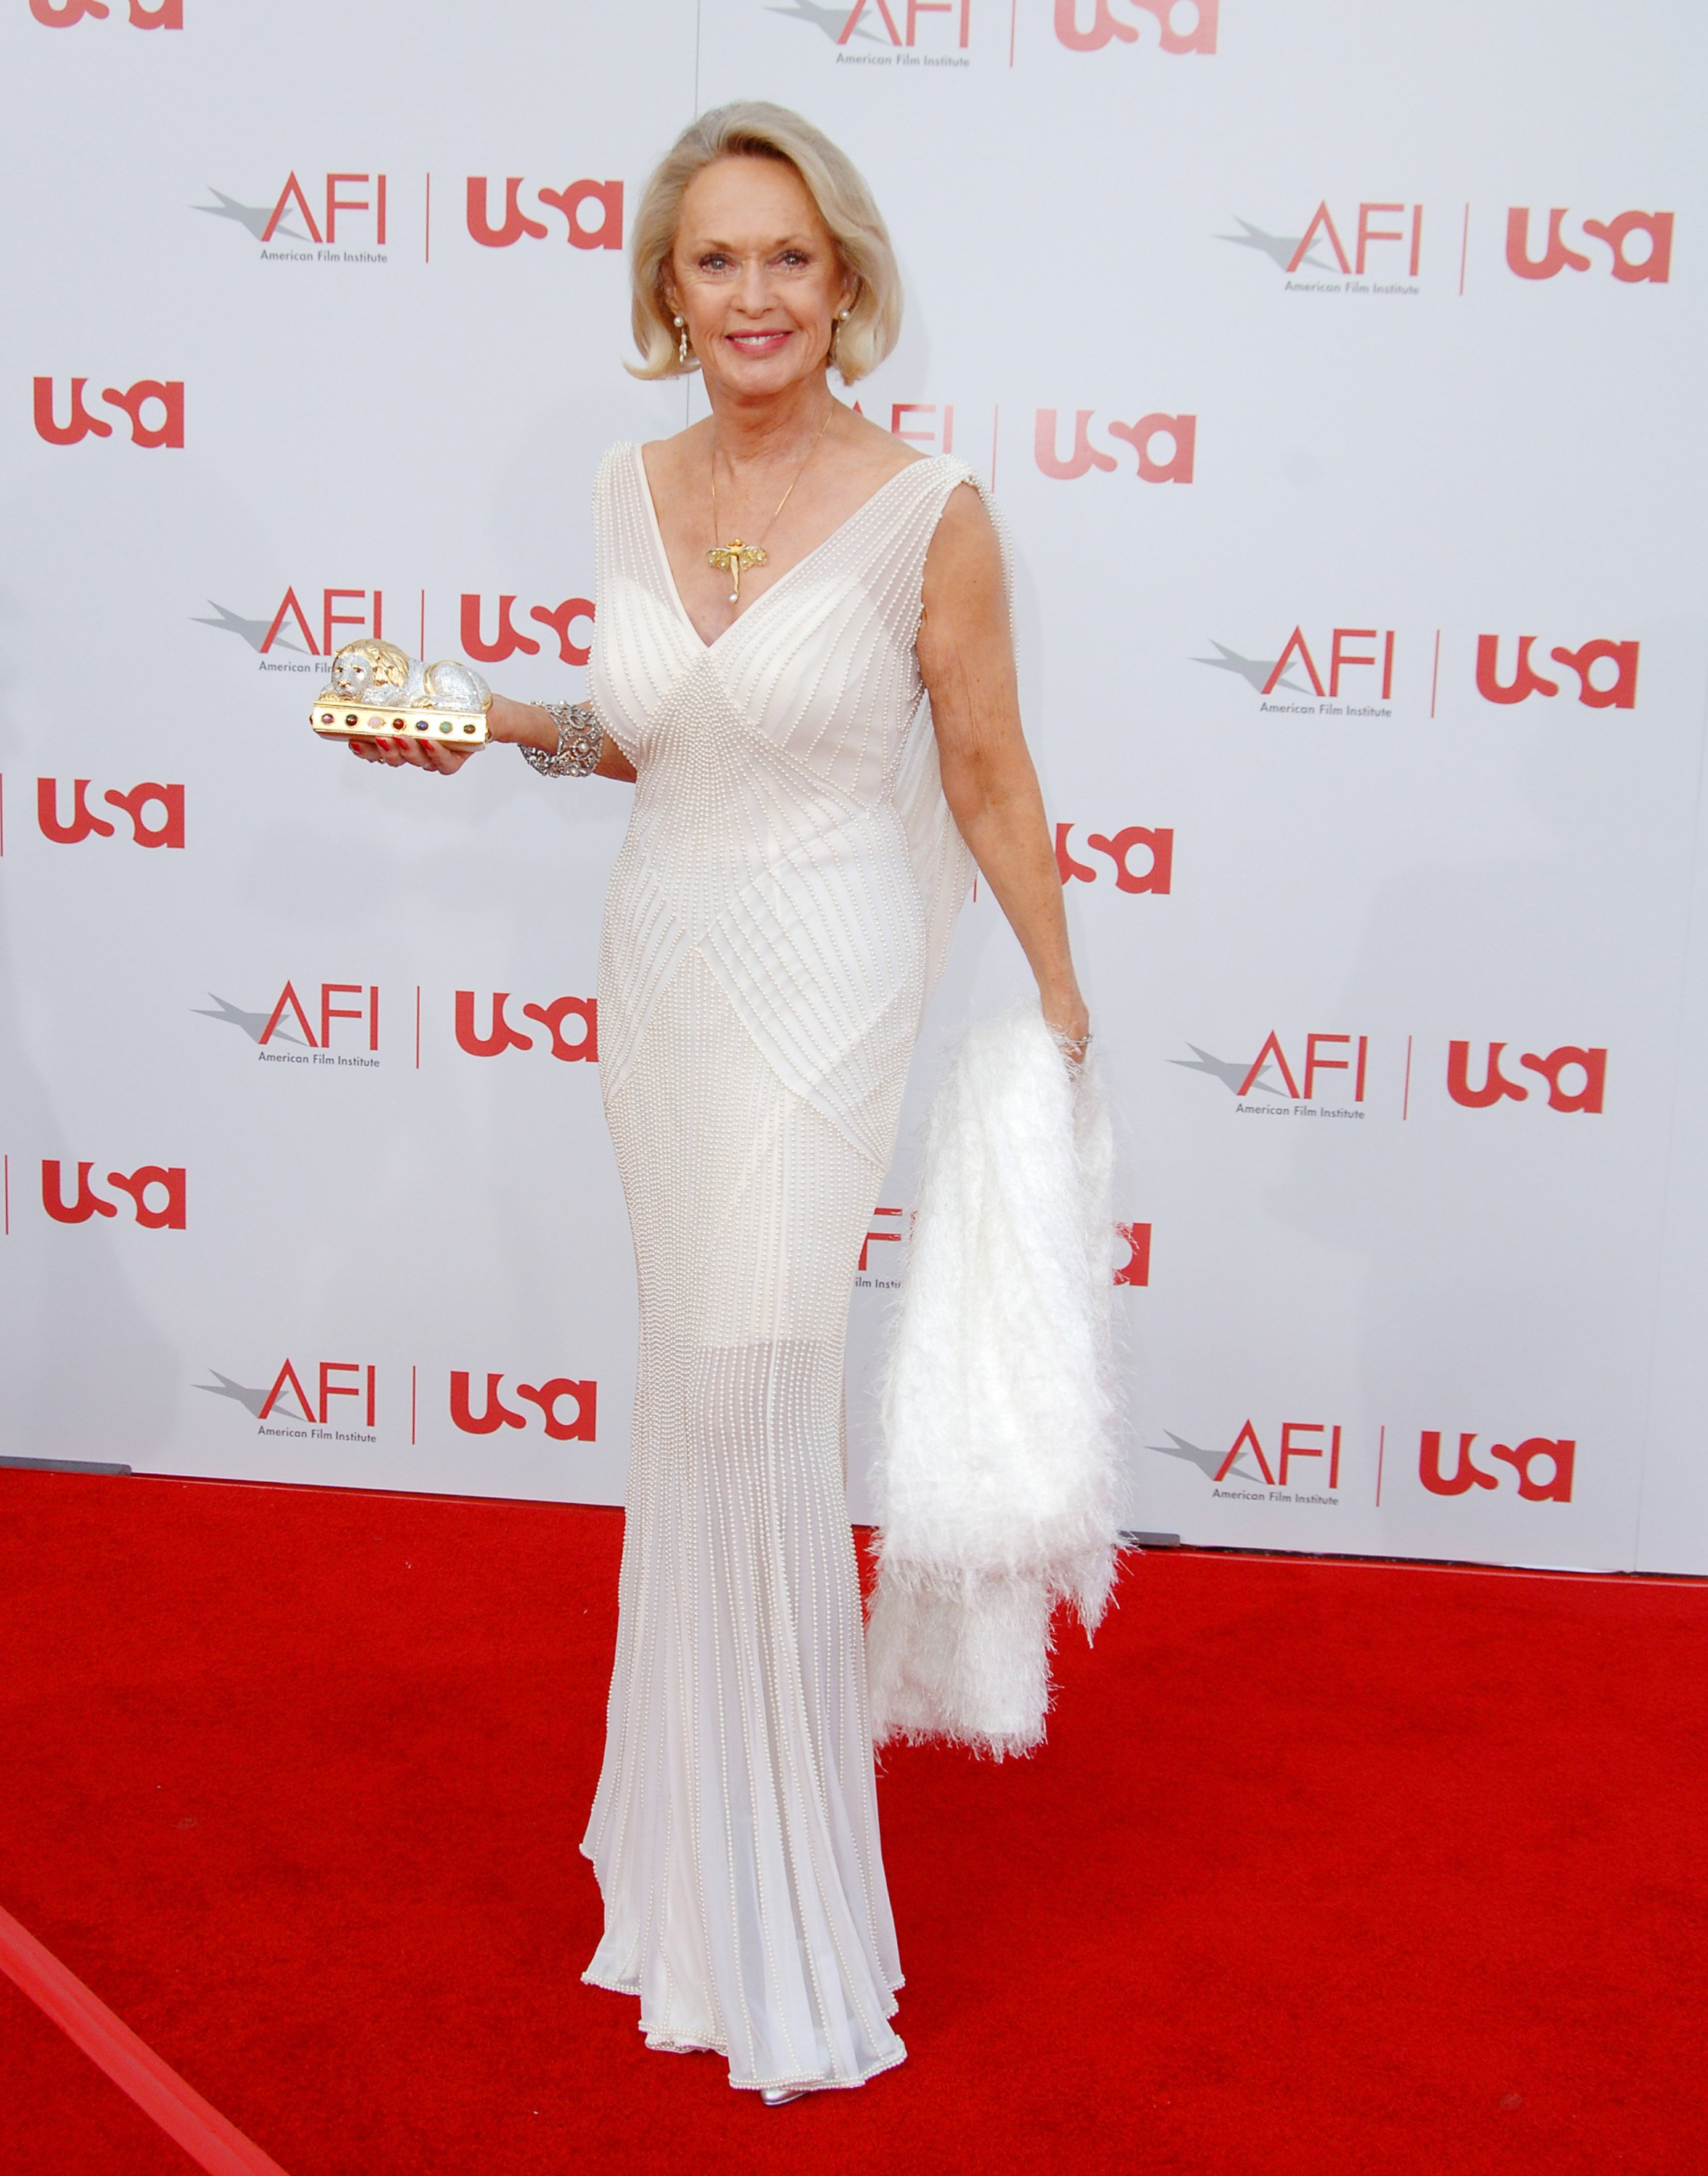 Tippi Hedren during 34th Annual AFI Lifetime Achievement Award: A Tribute to Sean Connery - Arrivals at Kodak Theatre in Hollywood, California, United States. | Photo: Getty Images